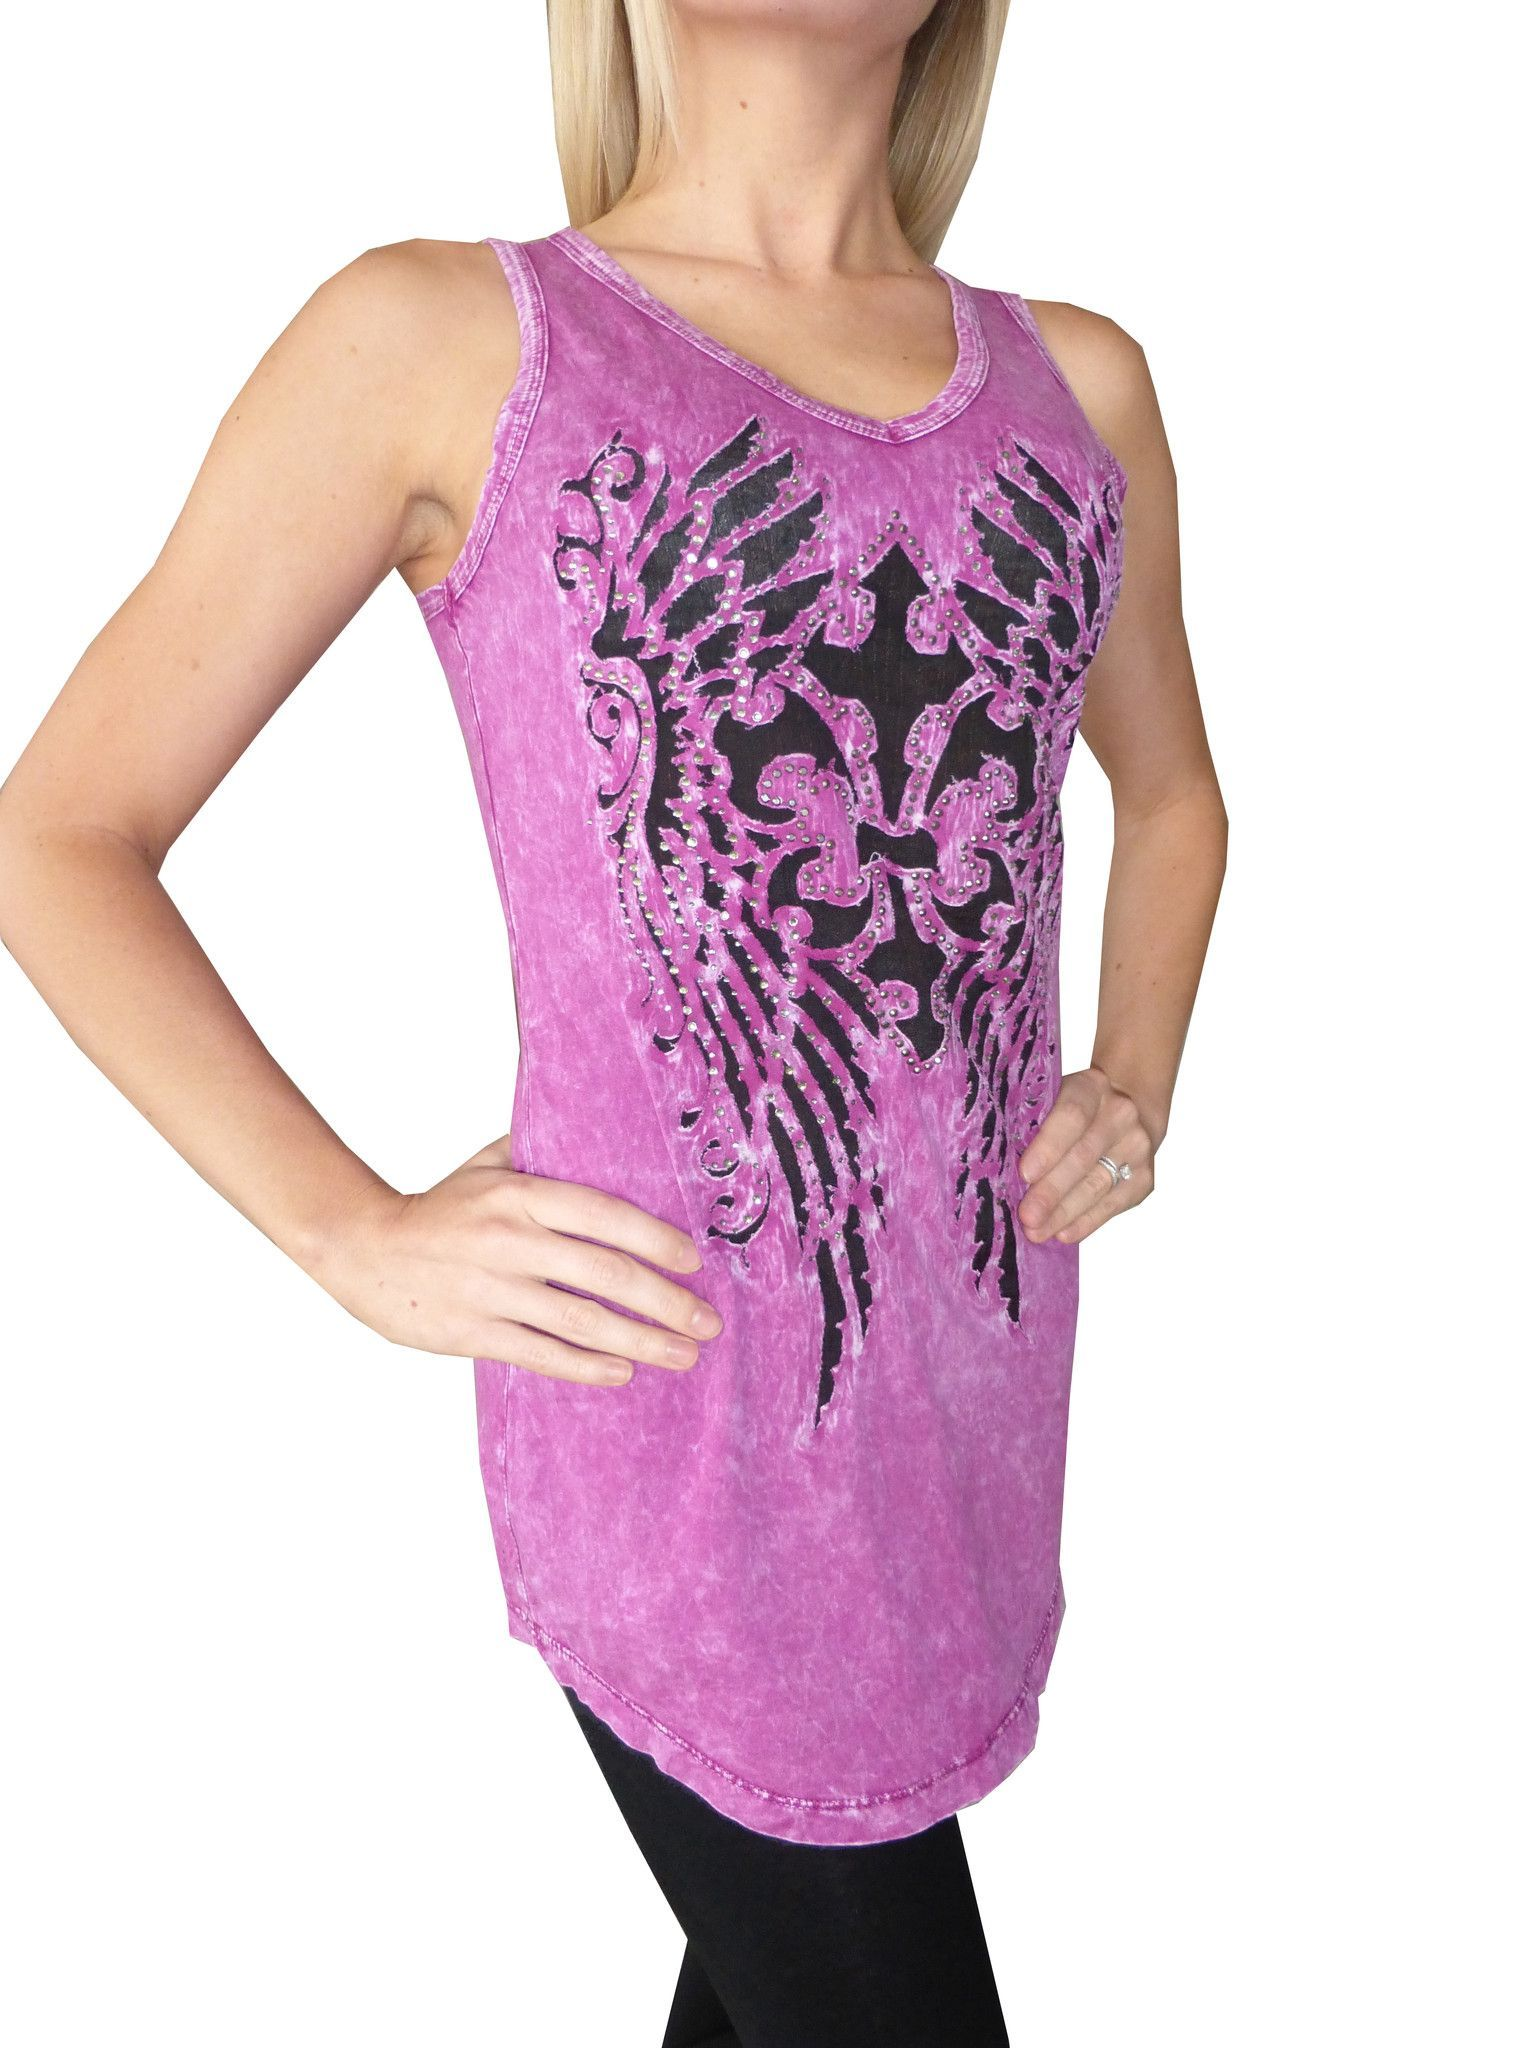 Lets Get Rocked Raspberry Tank - Vneck Long Tank Top with Wing Cross Cutout & Crystal Design